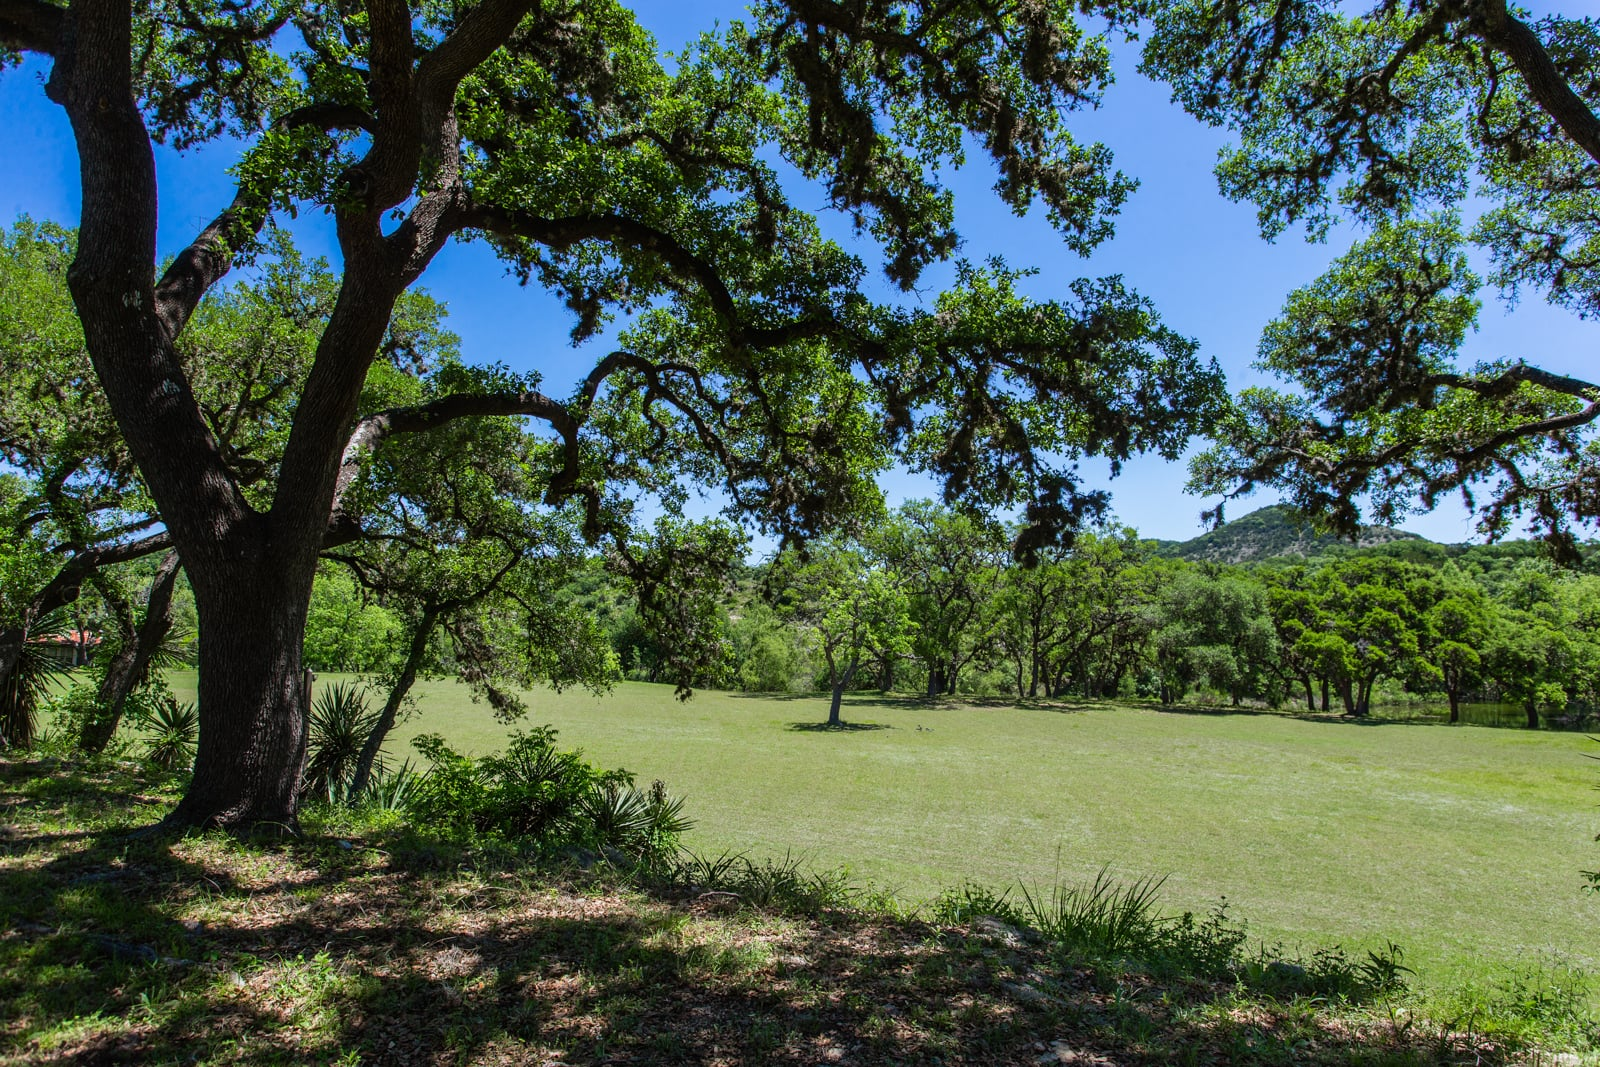 souht texas ranches for sale